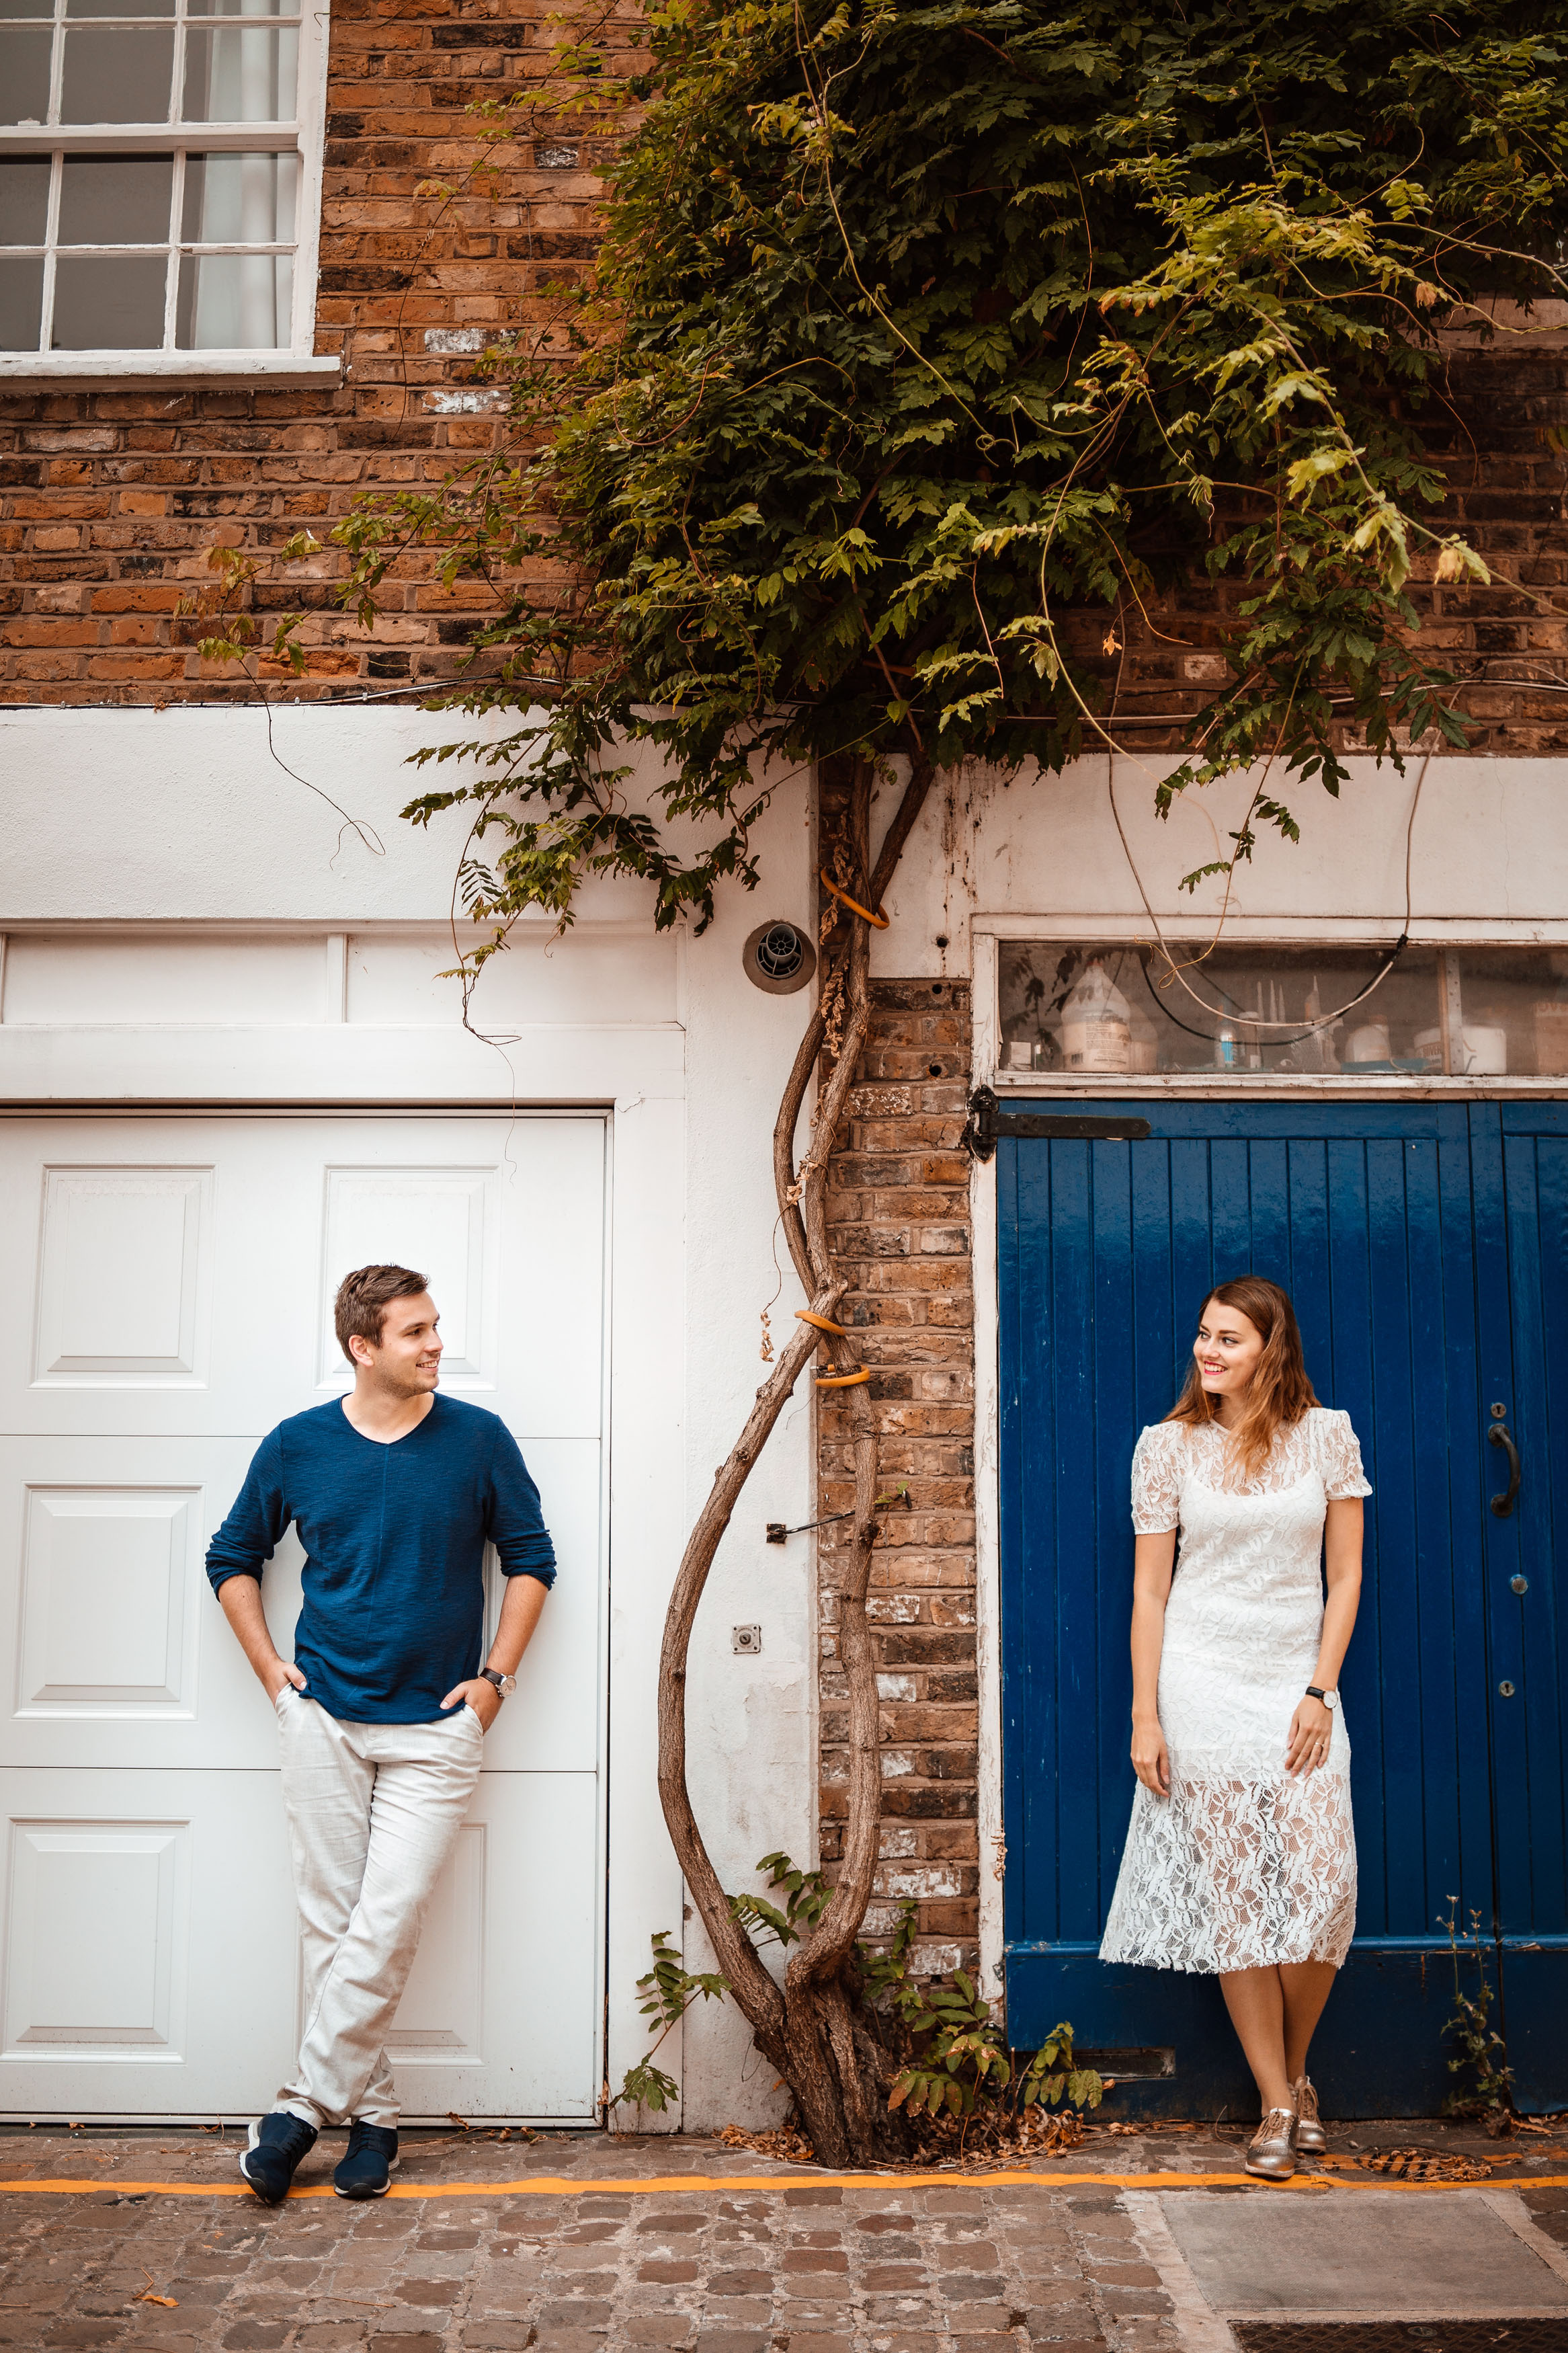 Destination_Wedding_London_Engagement_Session_Photographer-72.jpg